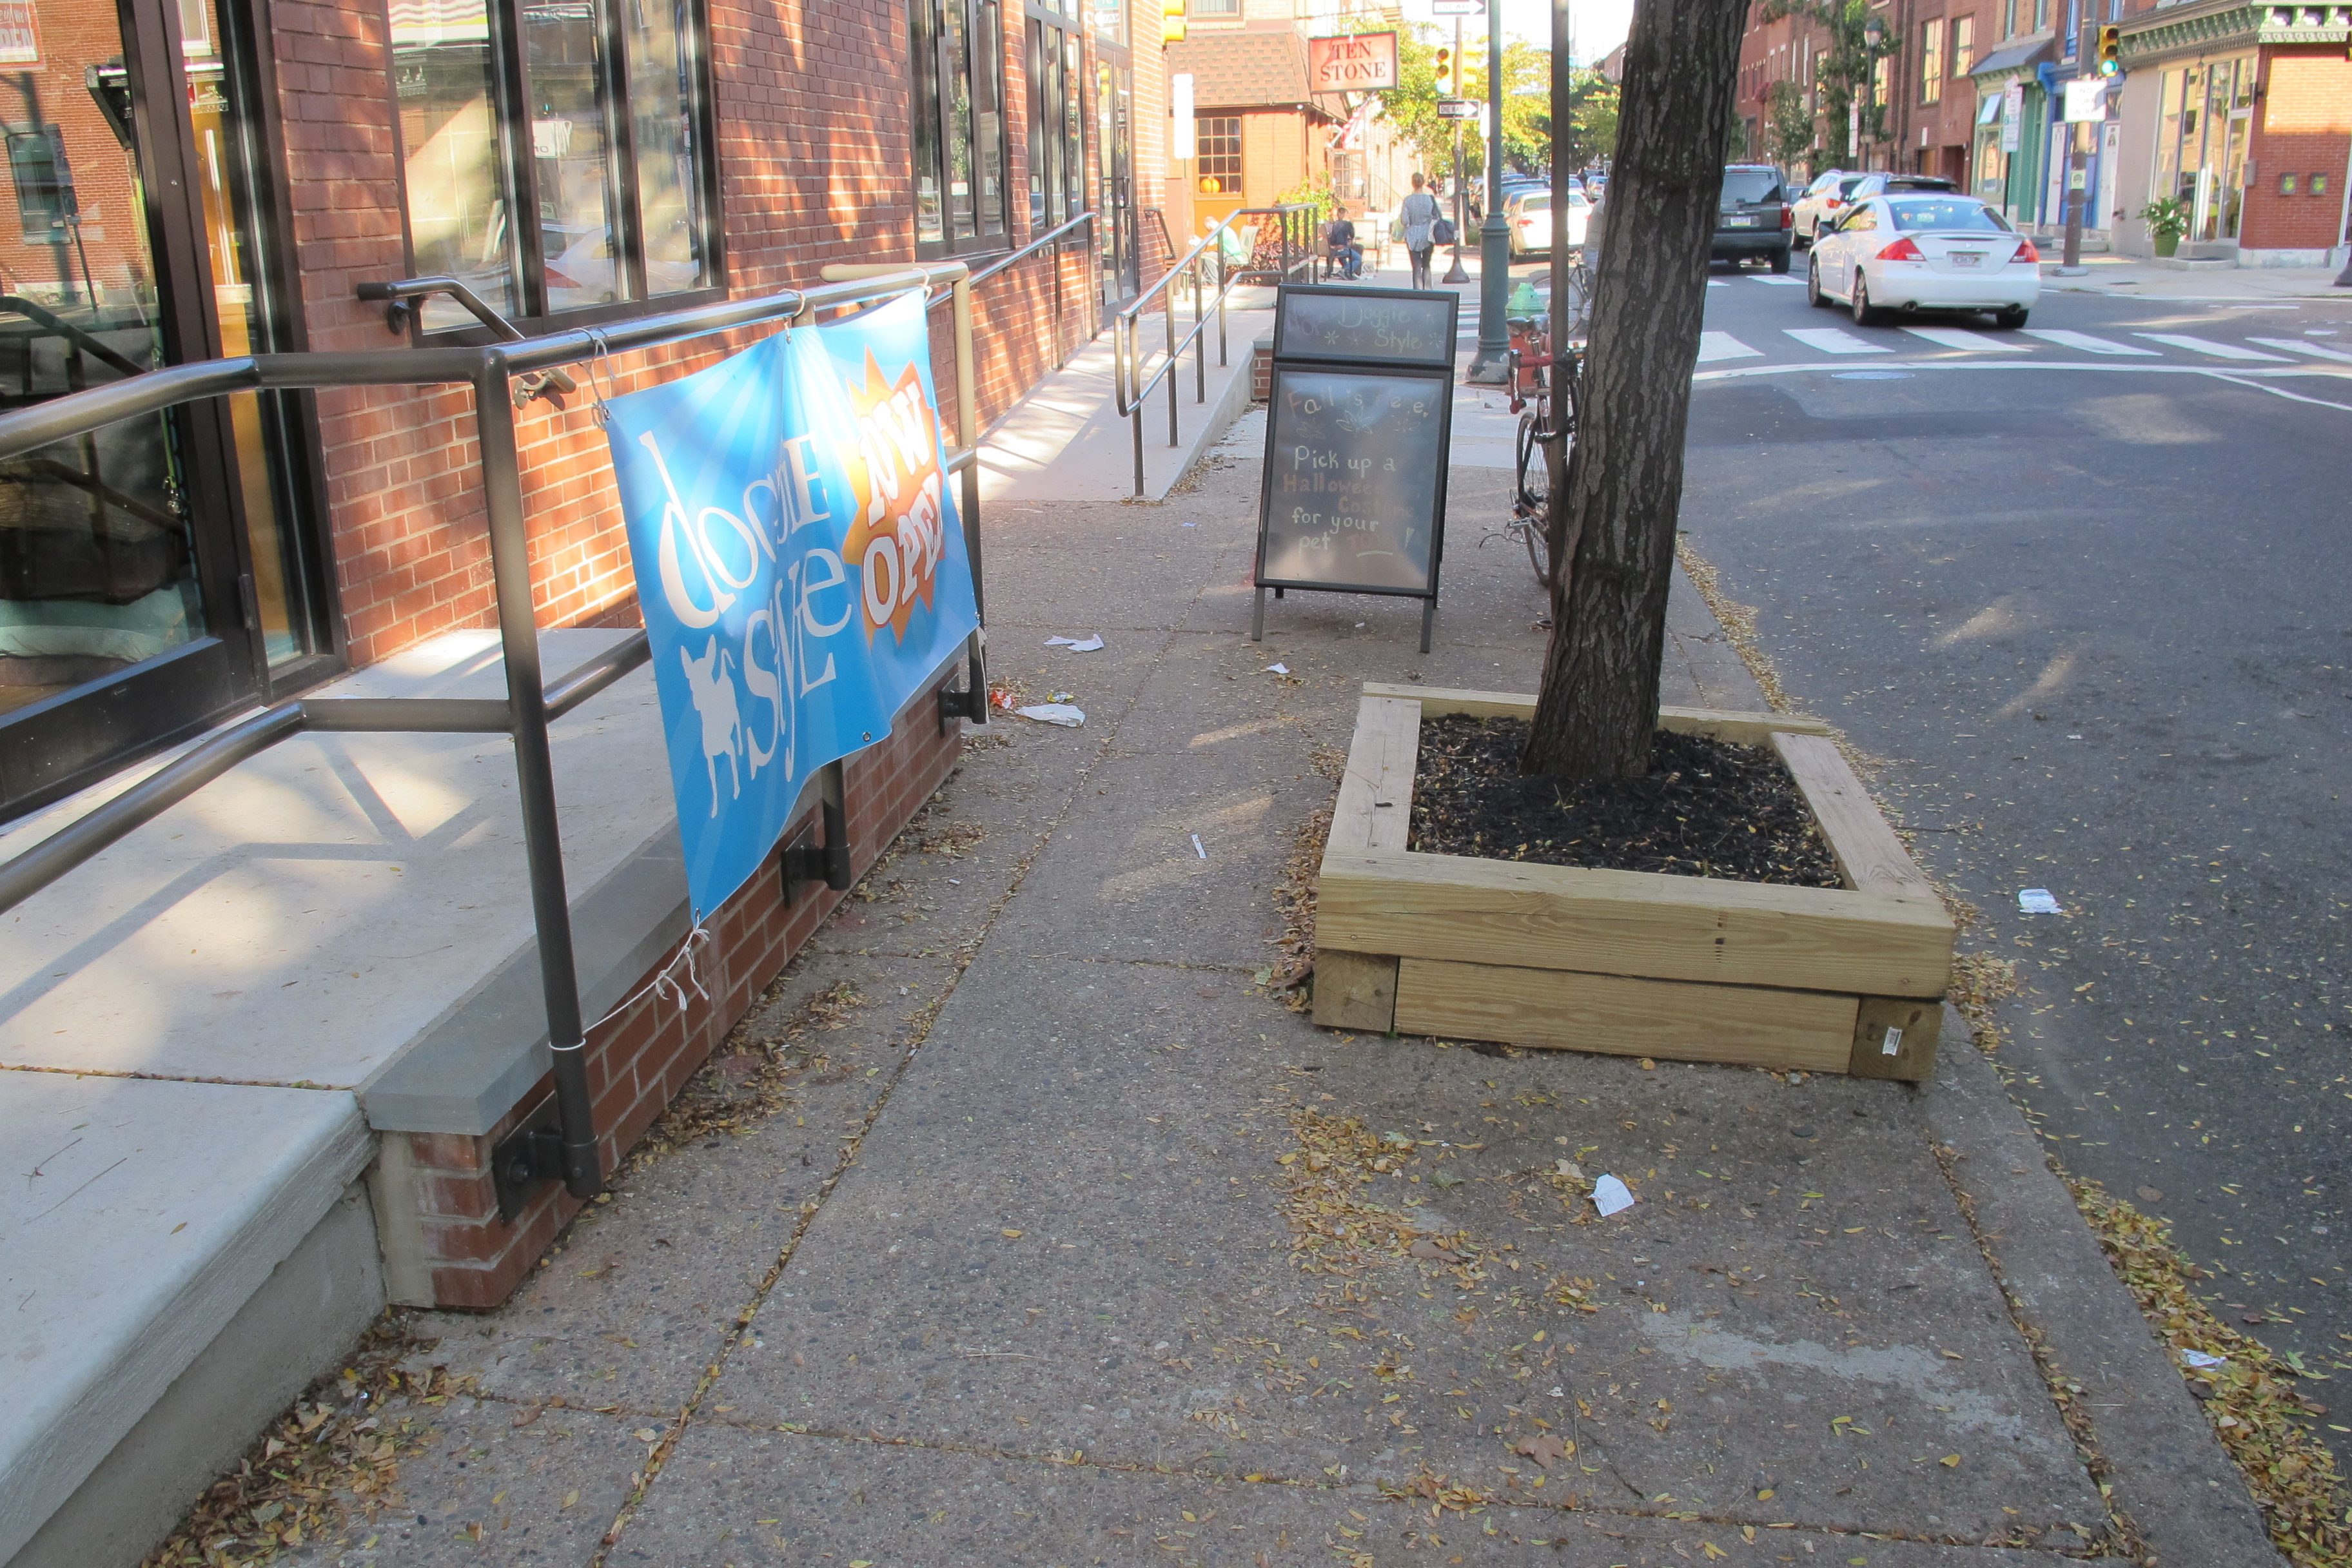 Between the new ramp and the street tree, the sidewalk becomes about 3 feet wide.